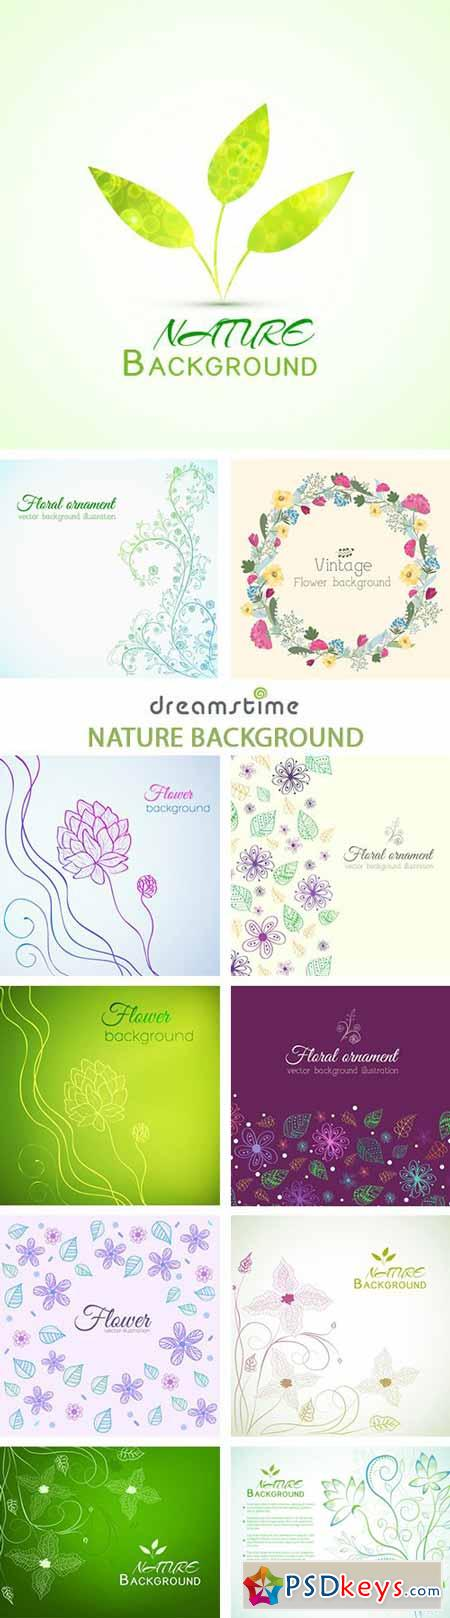 Nature Background - 25xEPS